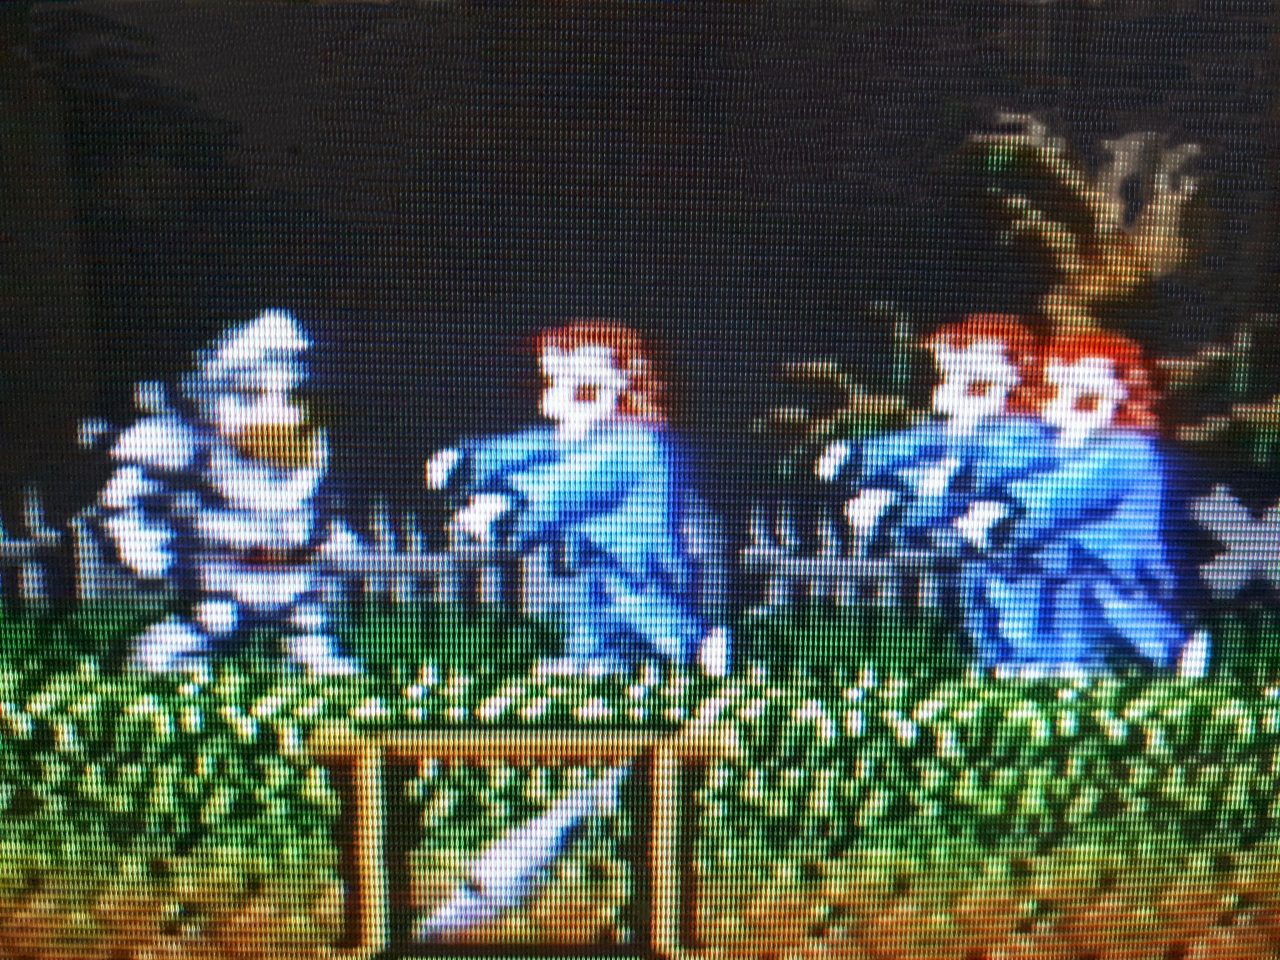 Ghosts 'n Goblins CRT close up